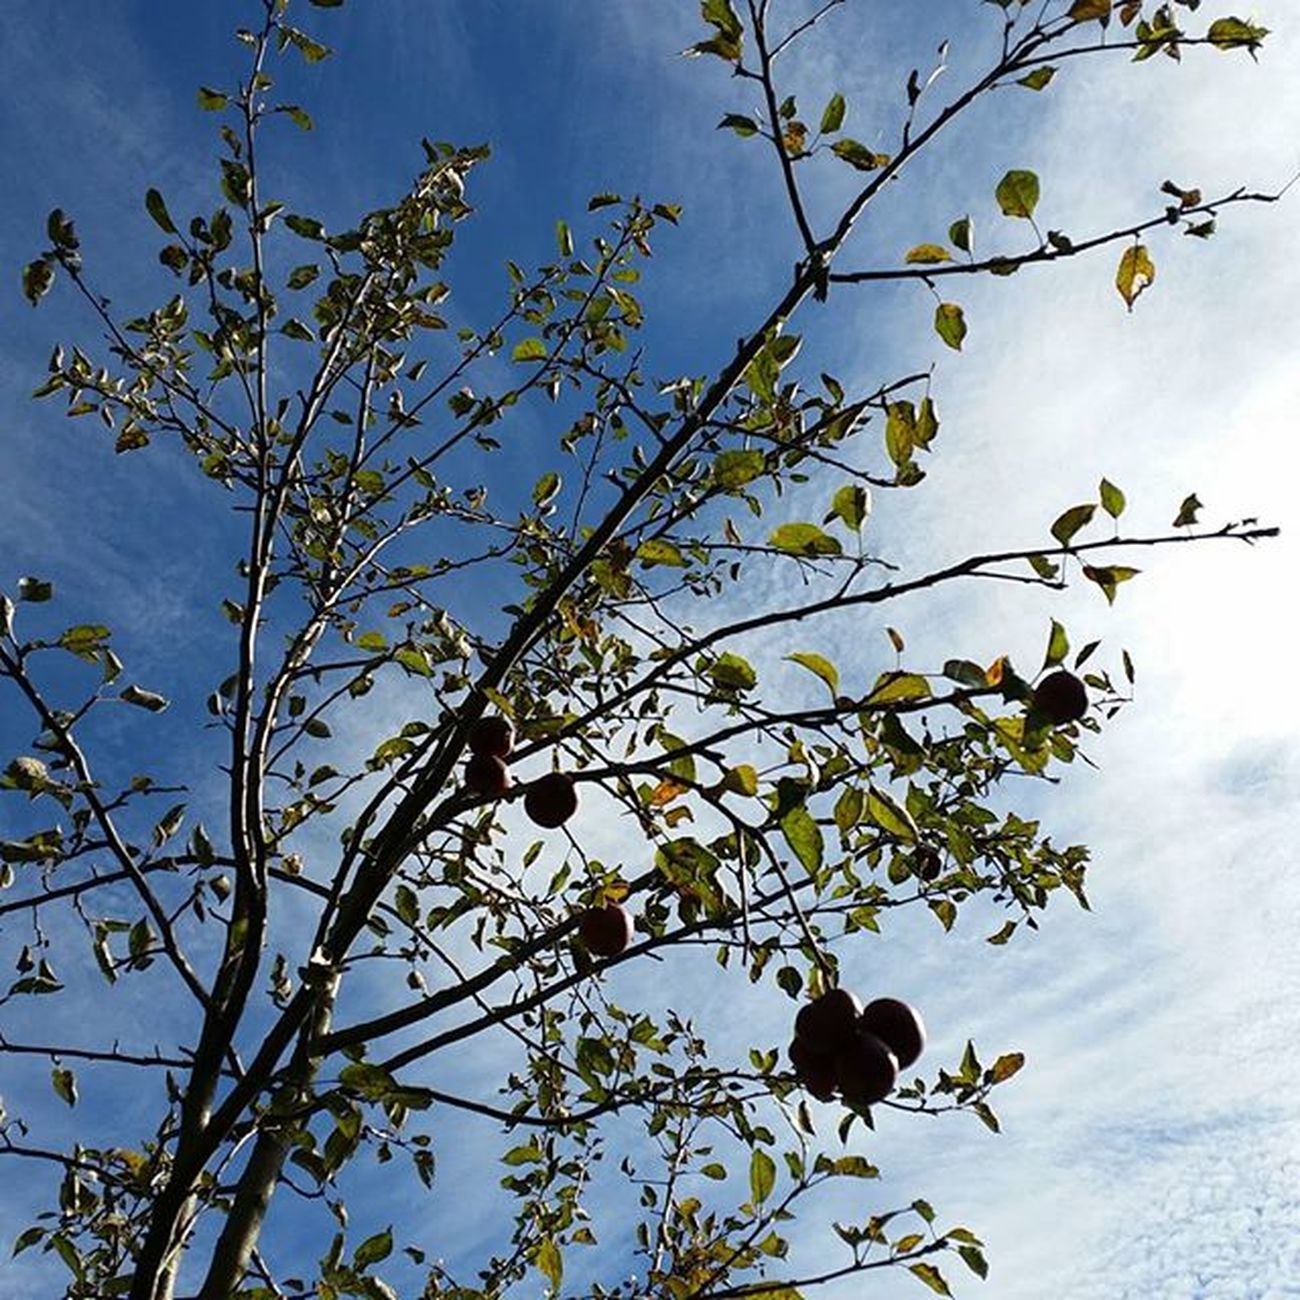 Mele  Melo Albero Alberodimele Nature Natura Naturelovers Sight Sightseeing Tree Sky Skyporn Skylovers Travel Travelpic Shoot Keepcalm Home Sila Silapiccola Montagna Mountains Autumn White Clouds green leaves